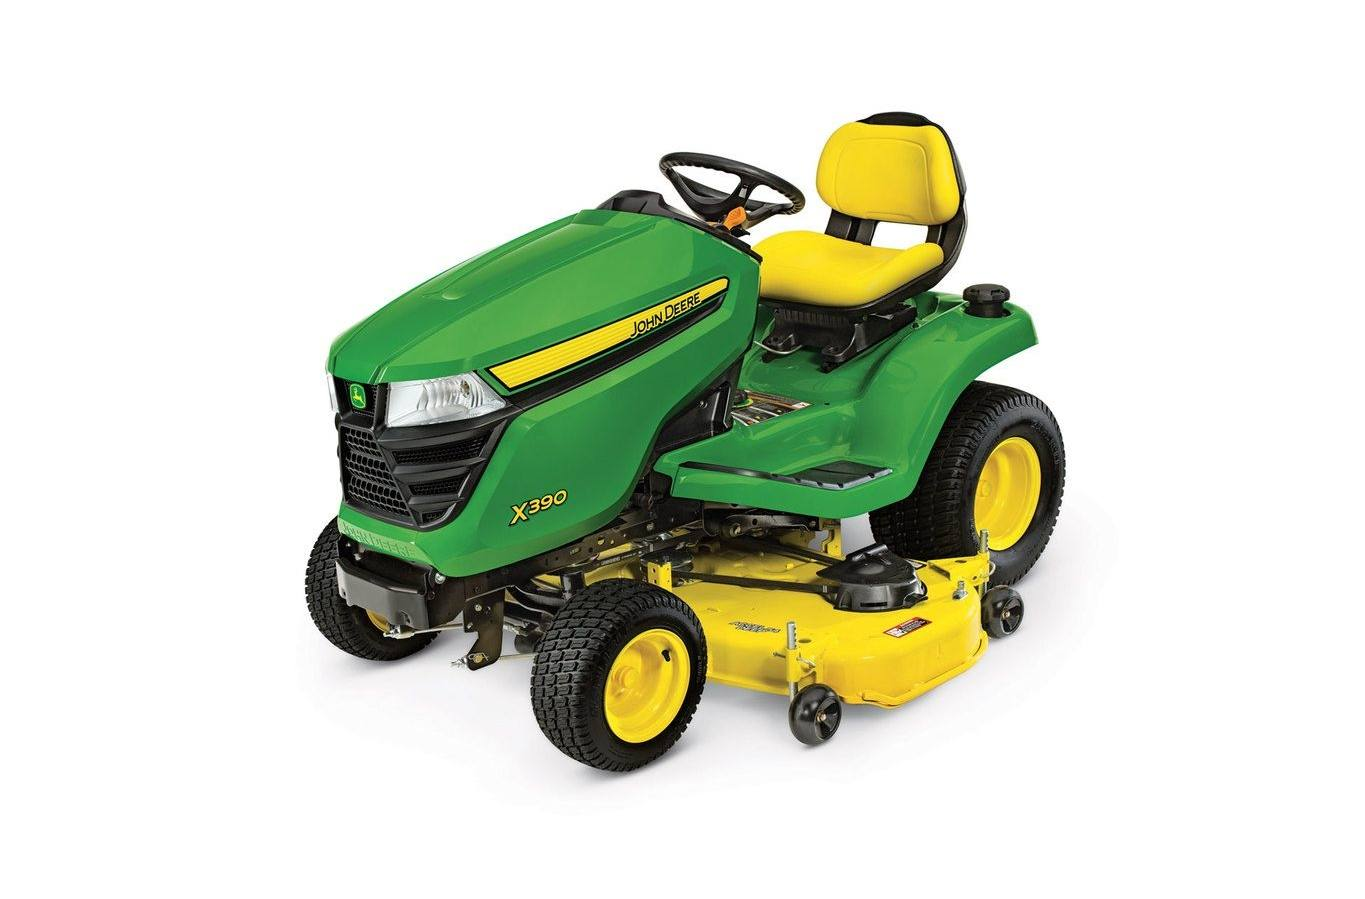 2019 John Deere X390, 48-in  deck